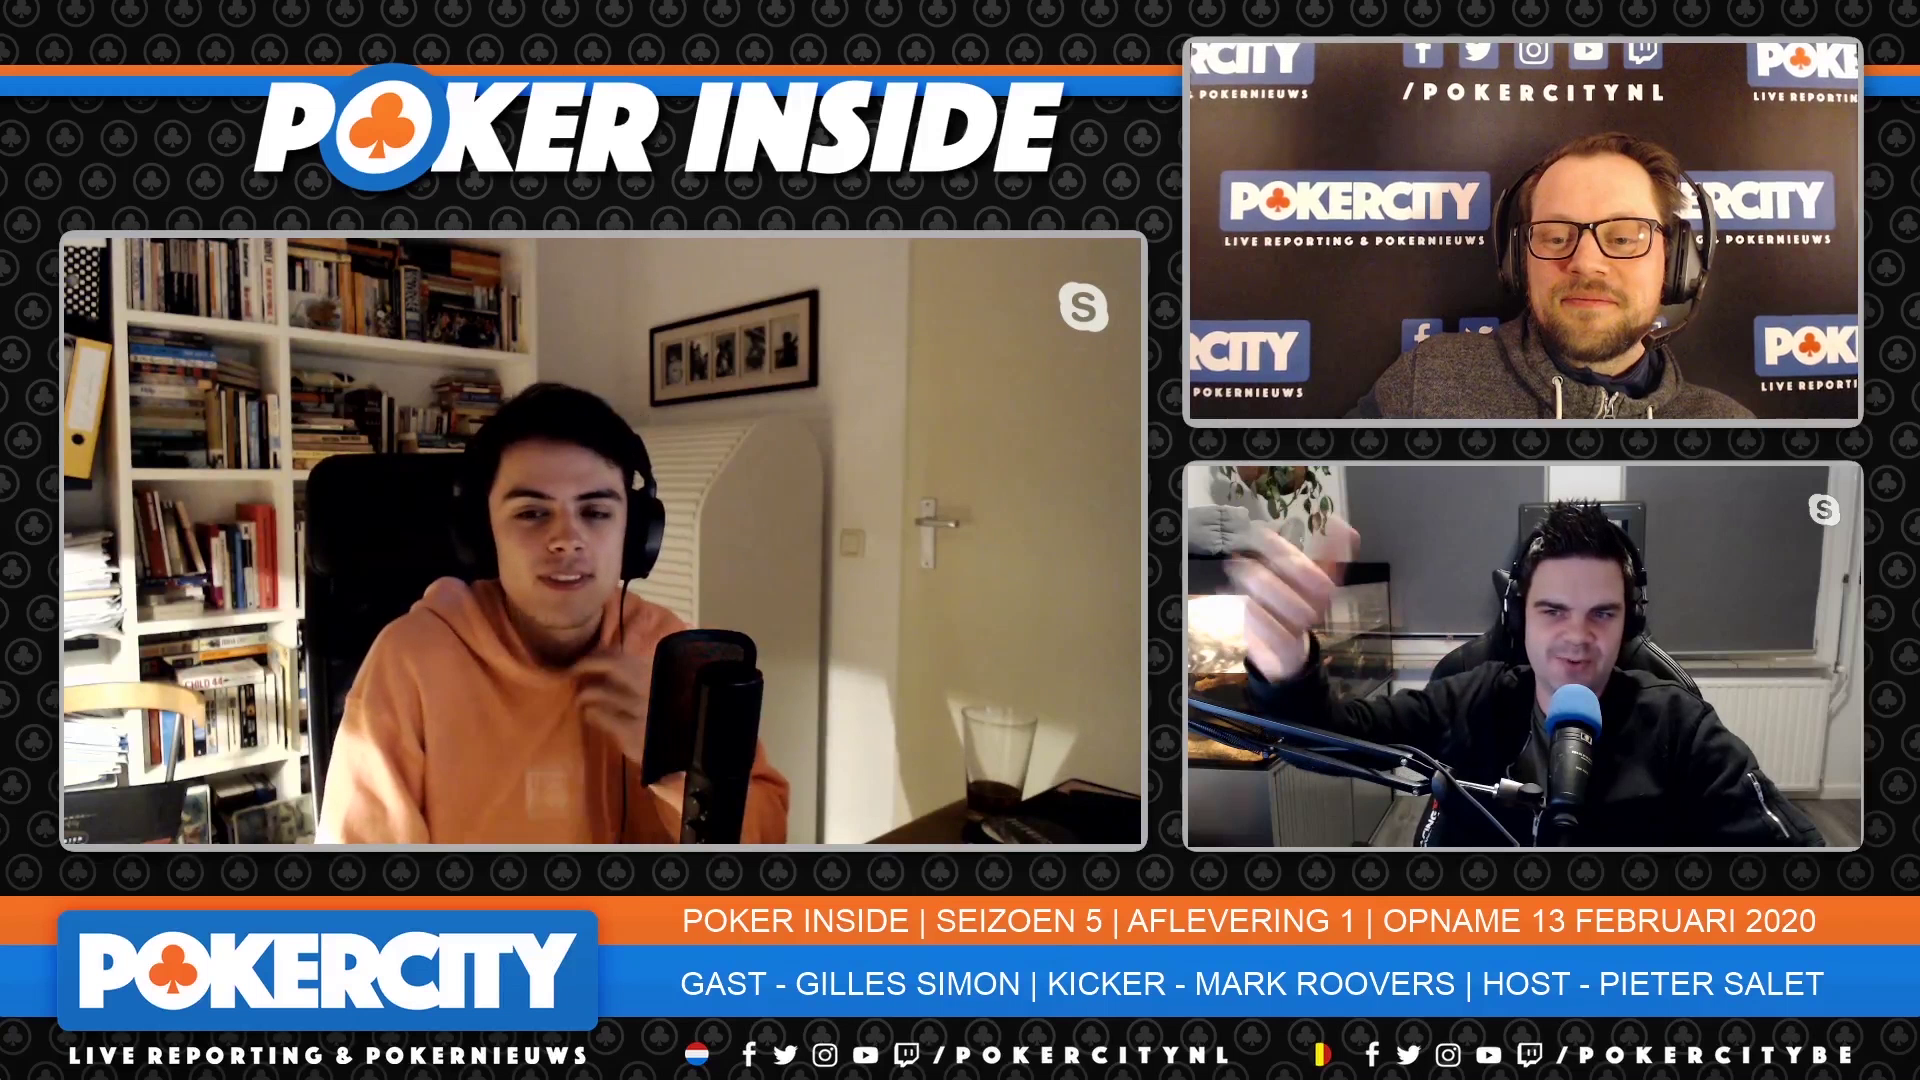 Poker Inside | Seizoen 5 | Aflevering 1 | $30K Platinum Pass-winnaar Gilles 'Ghilley' Simon